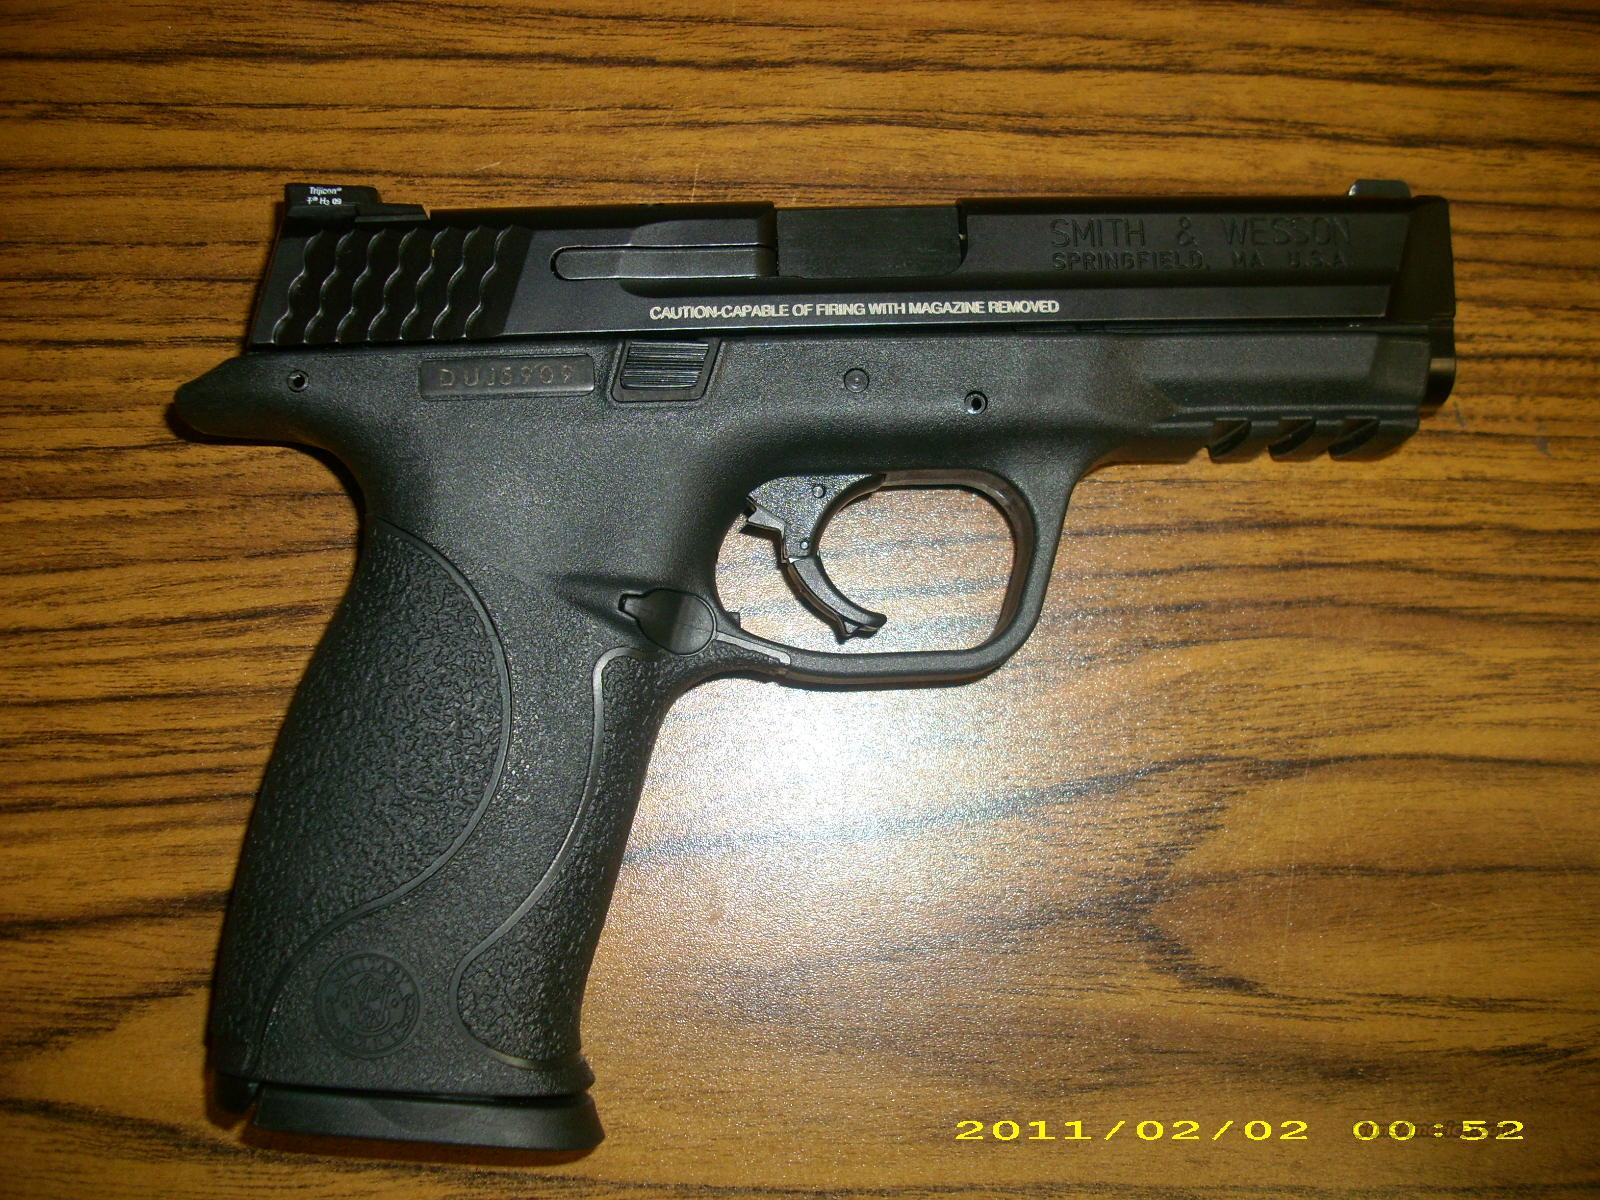 Smith and Wesson M&P 9 Pro Series 9mm  Guns > Pistols > Smith & Wesson Pistols - Autos > Polymer Frame